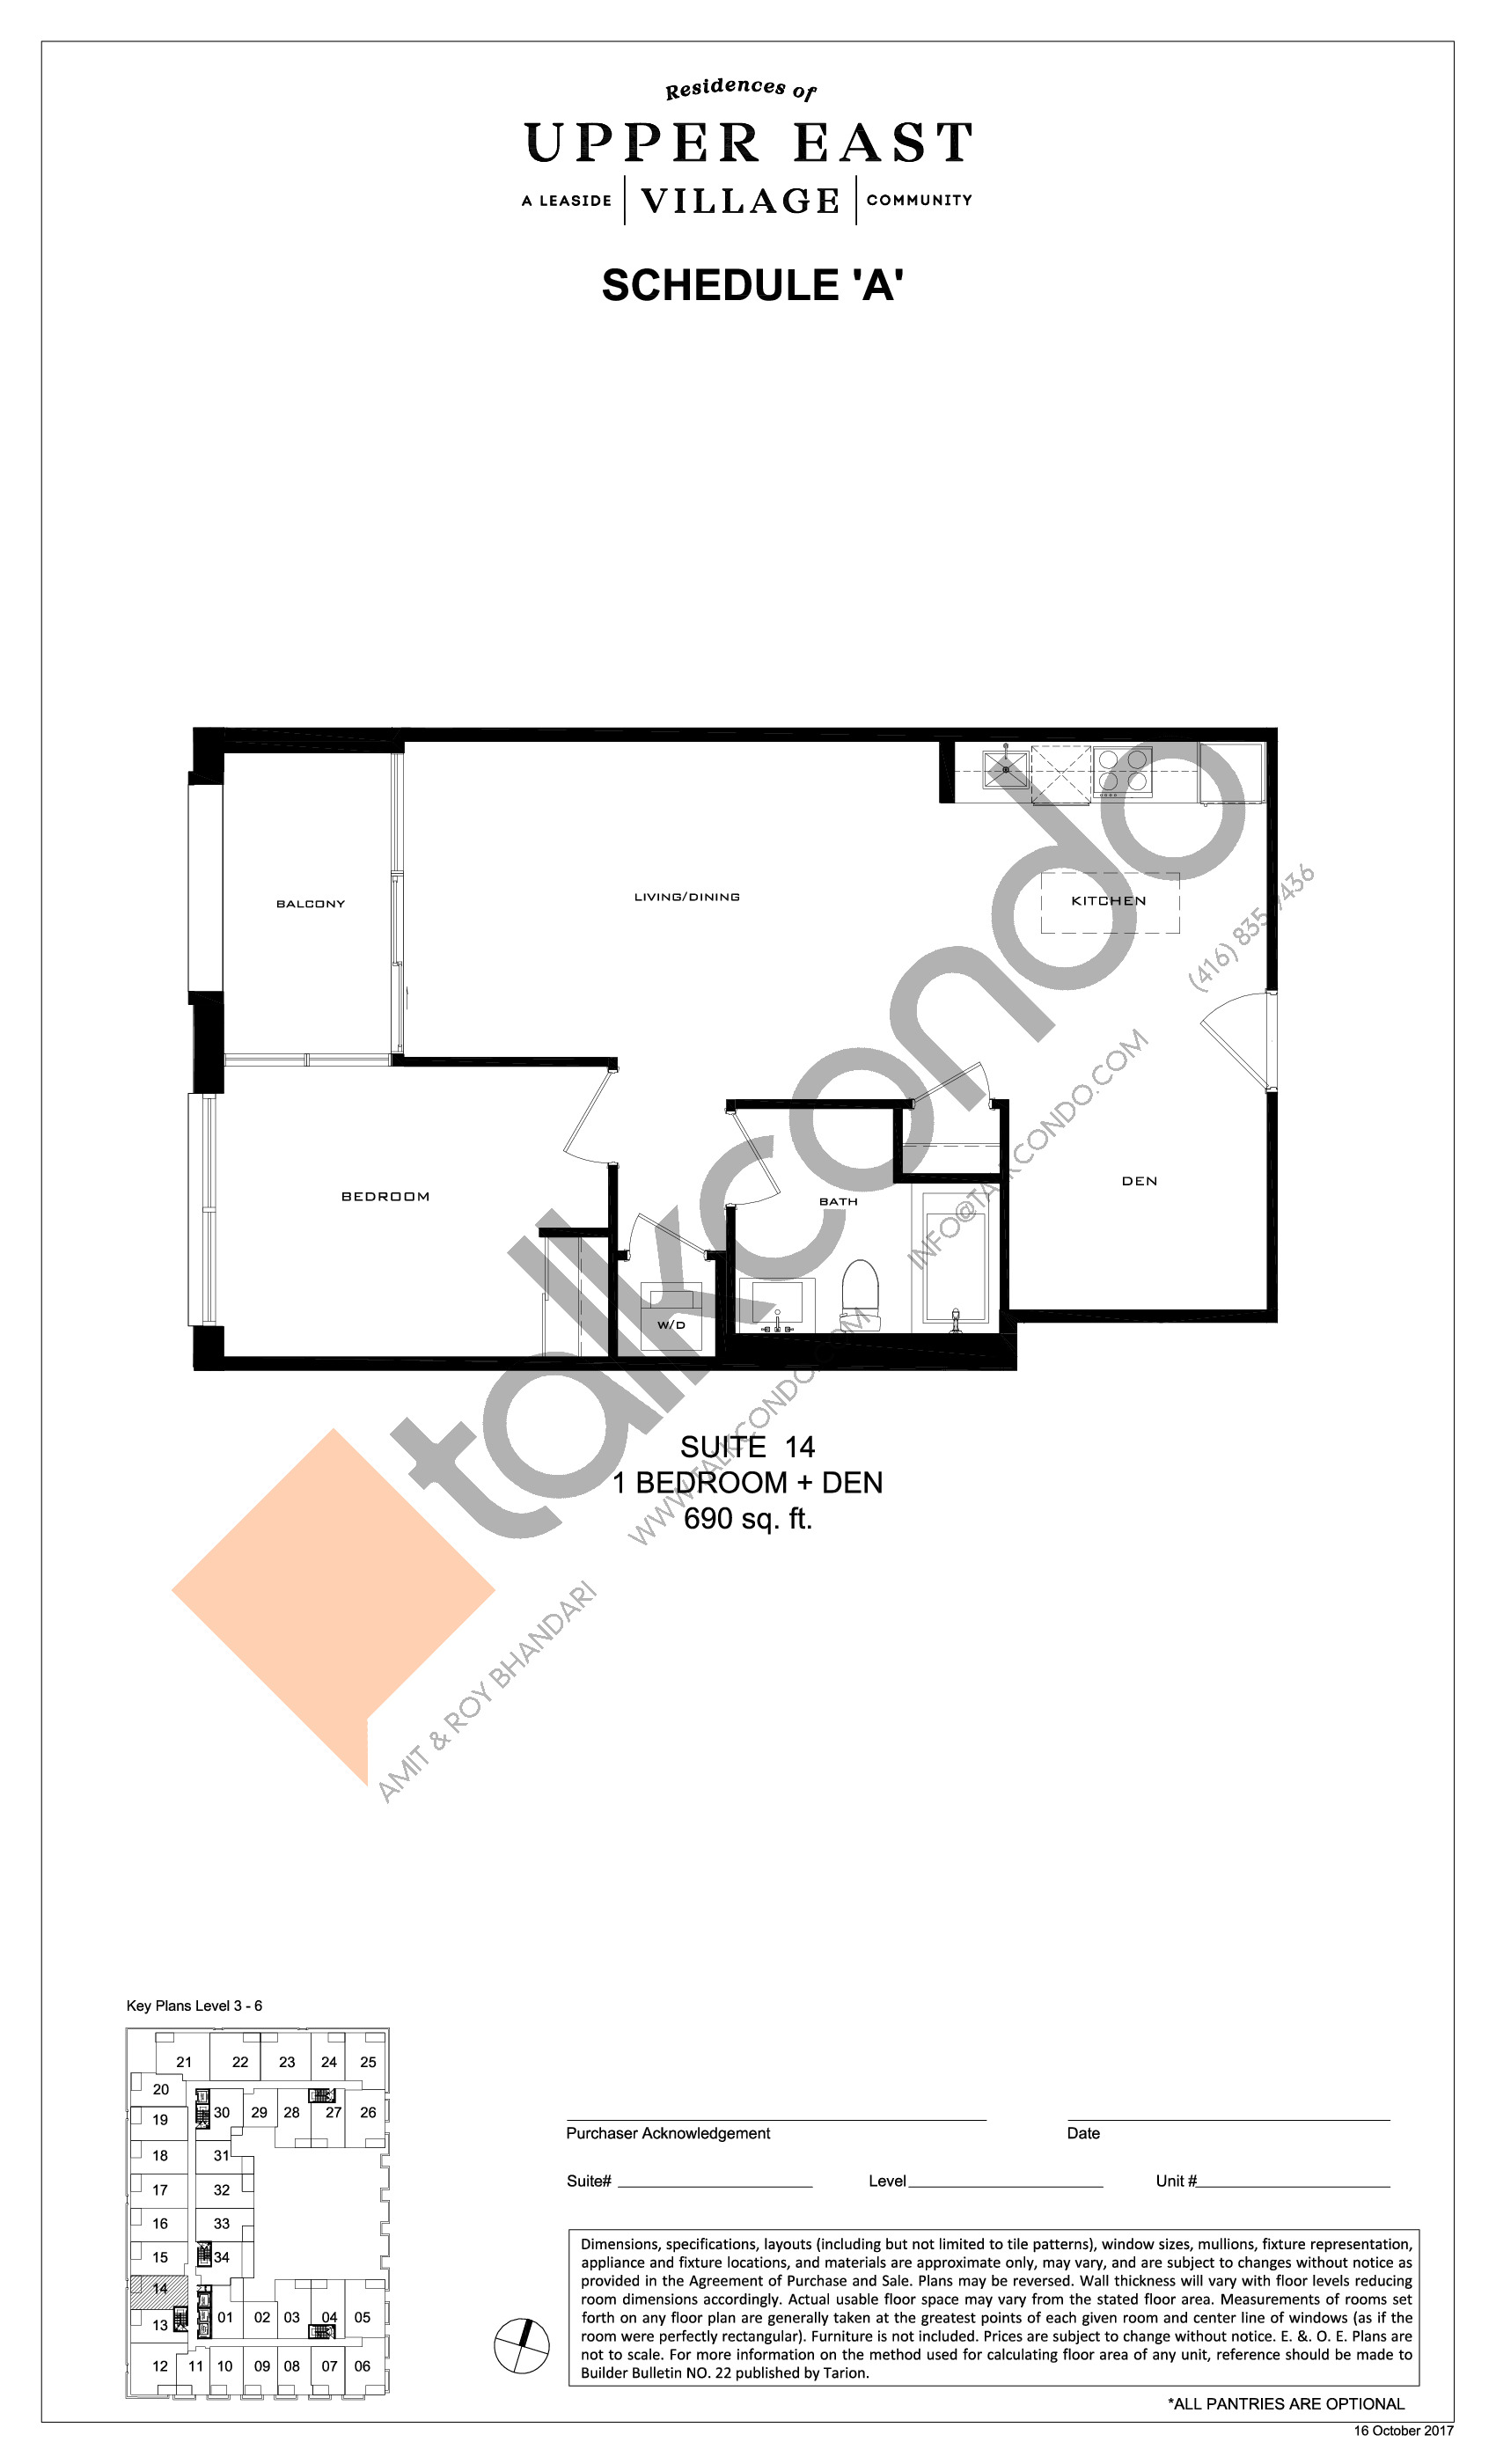 Suite 14 Floor Plan at Upper East Village Condos - 690 sq.ft